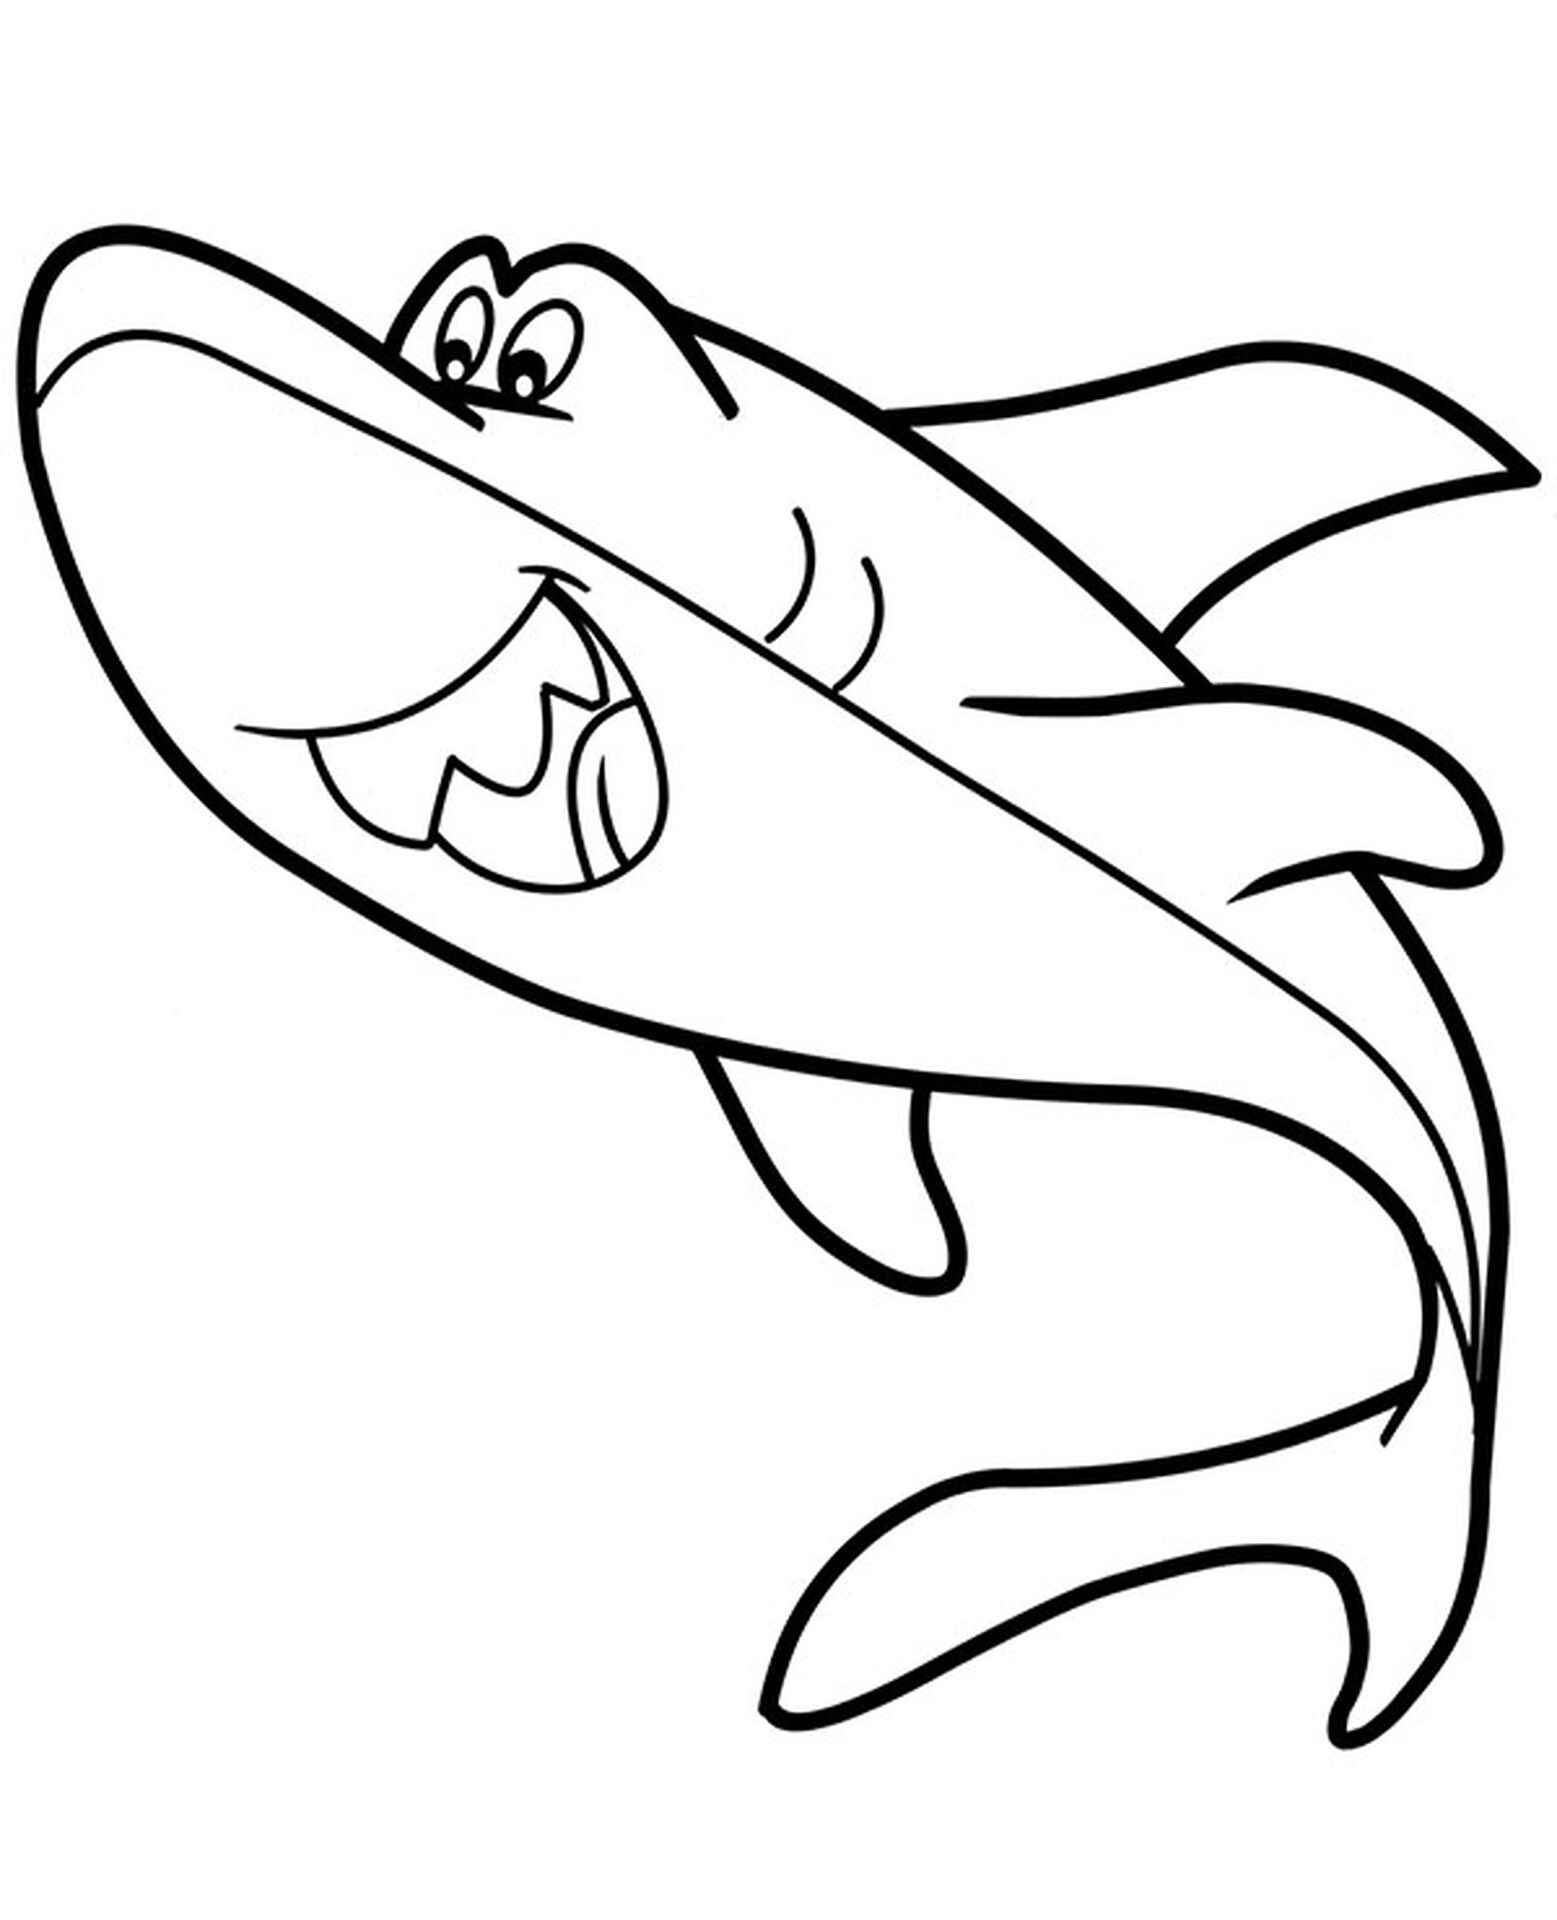 Shark Cartoon Image